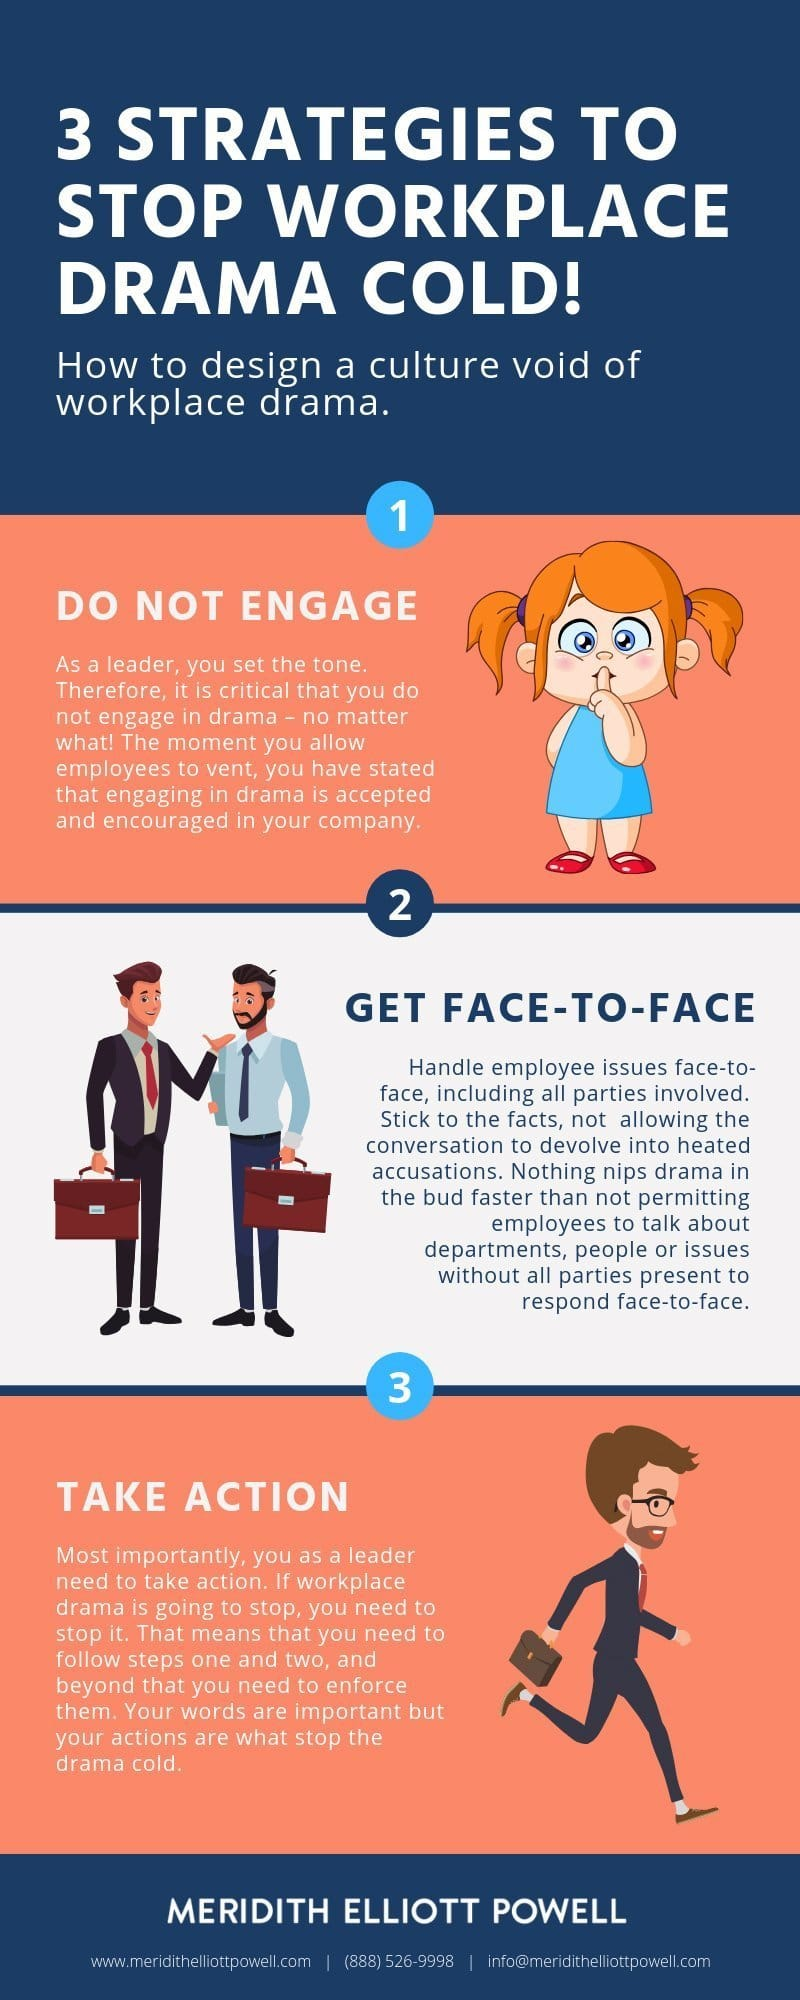 3 Steps To Stop Workplace Drama Cold! | Meridith Elliott Powell